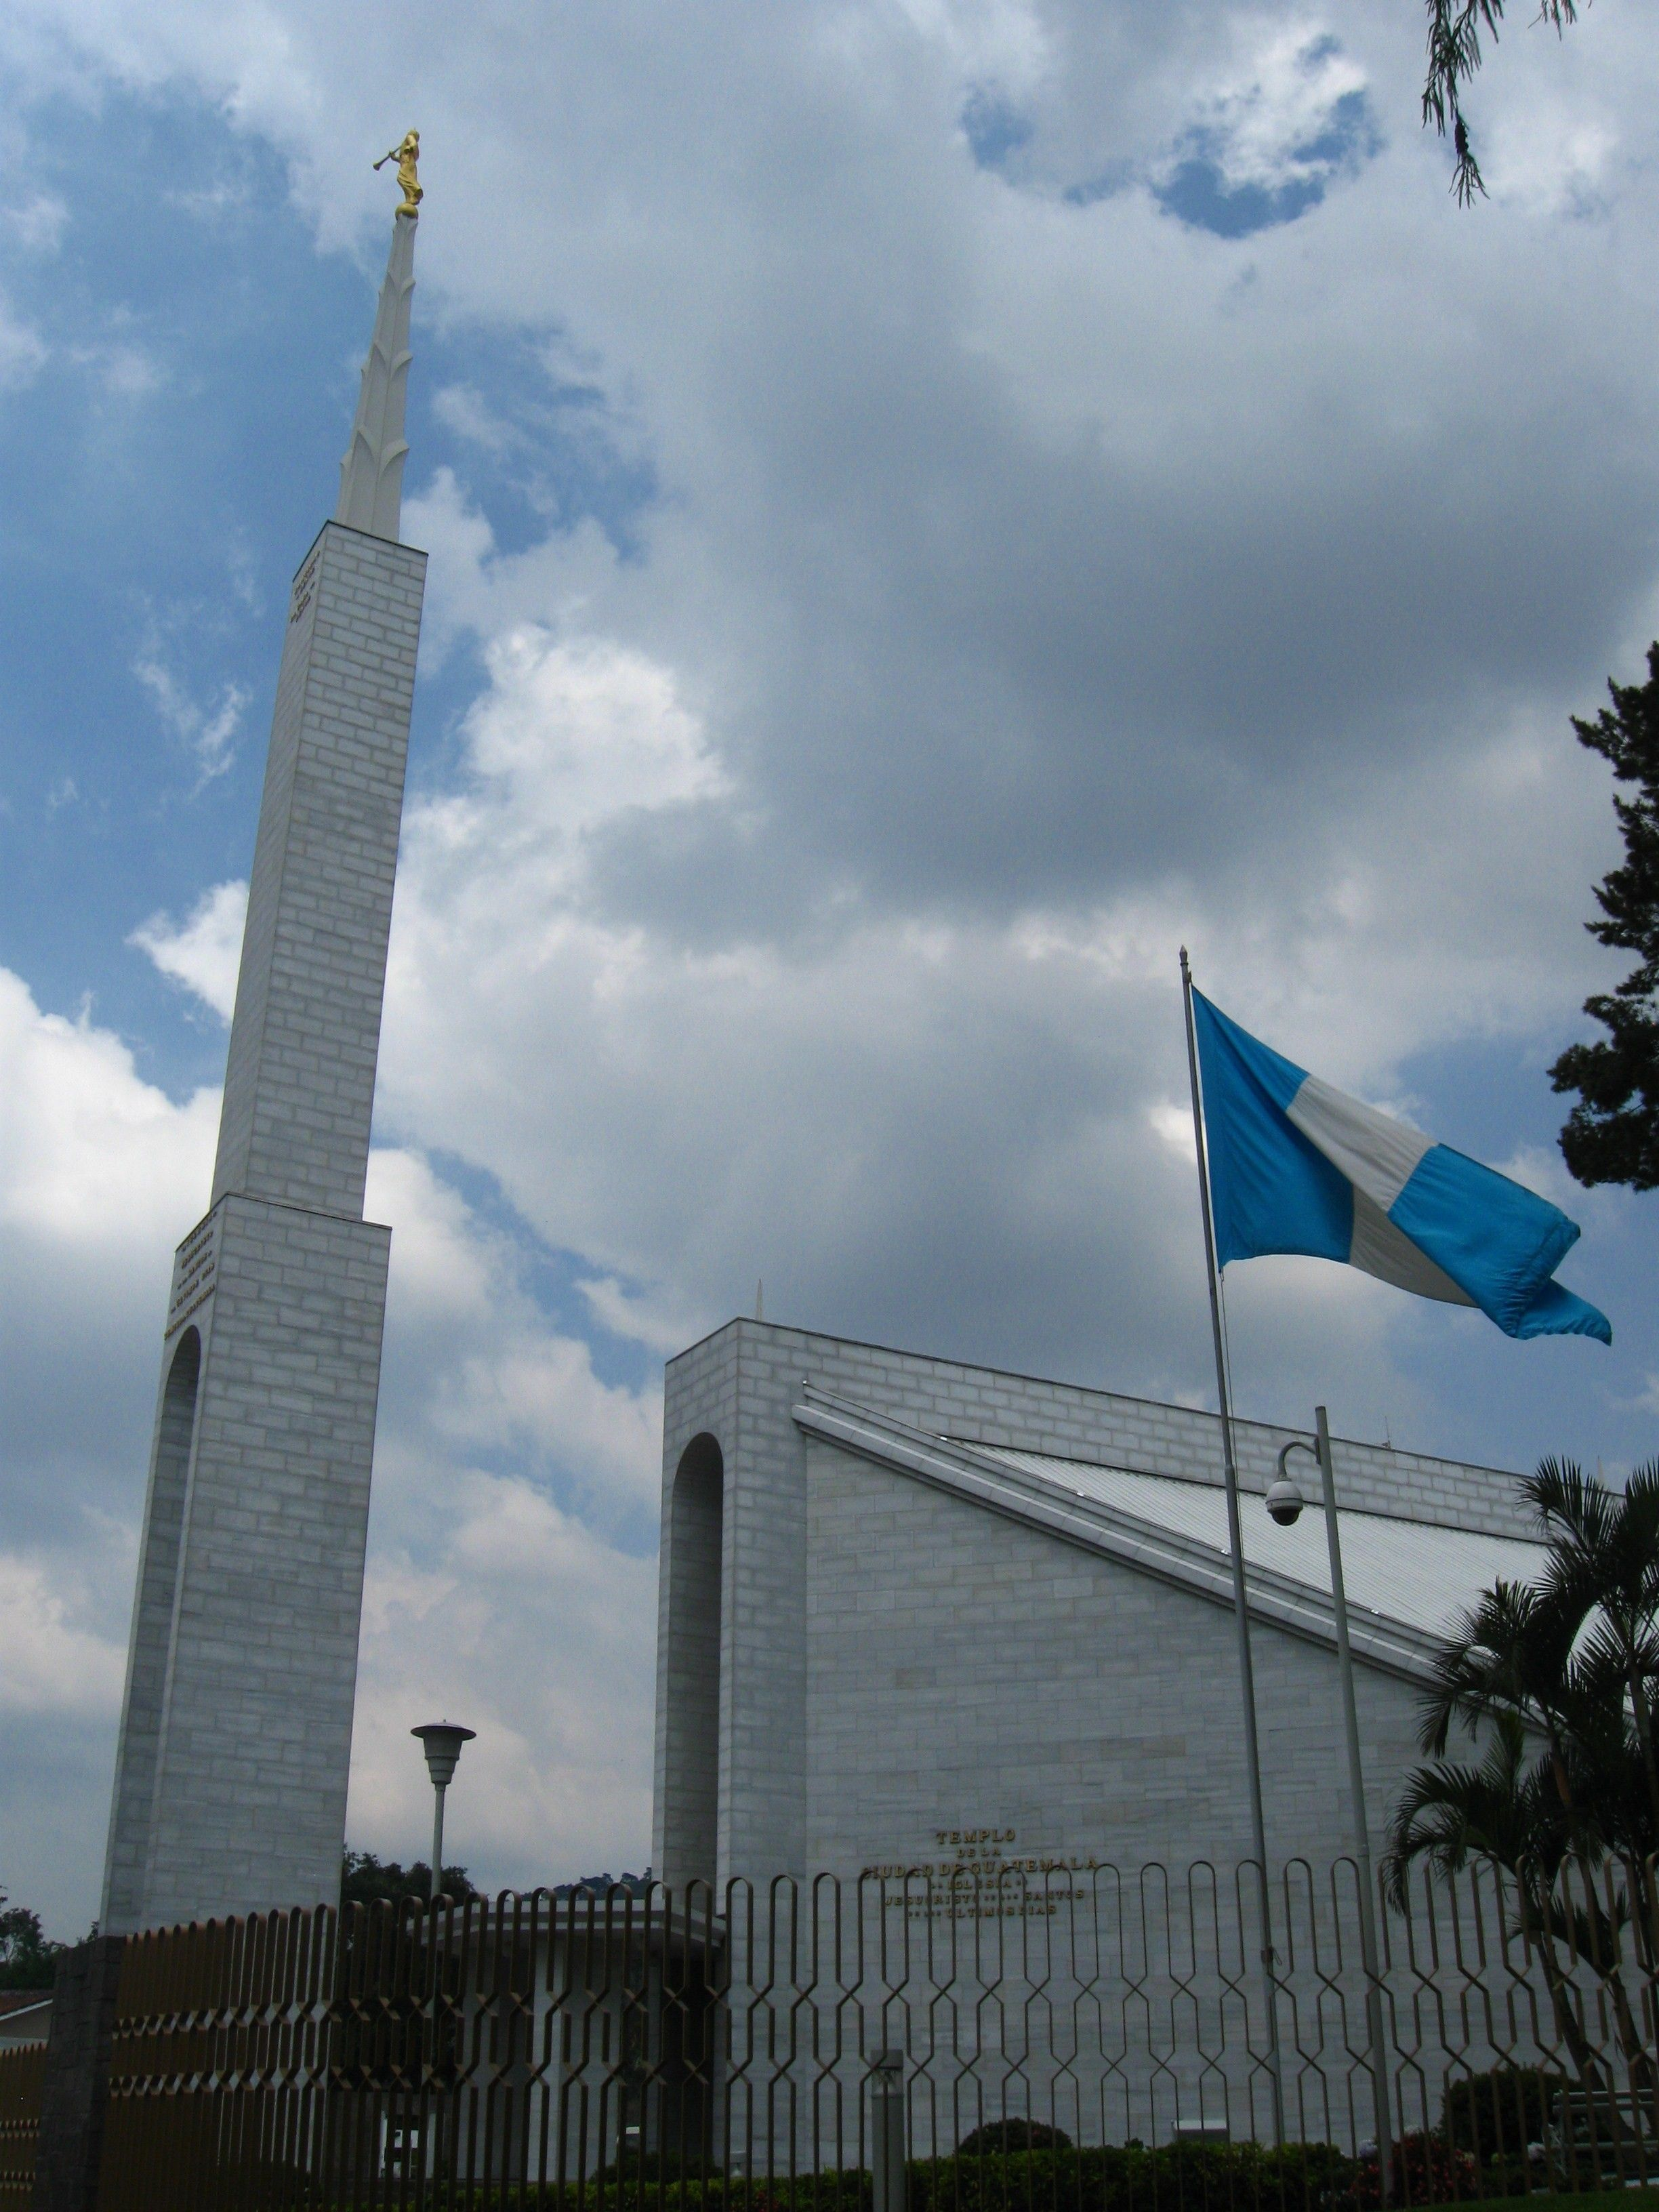 The Guatemala City Guatemala Temple side view, including the spire, flag, and gates.